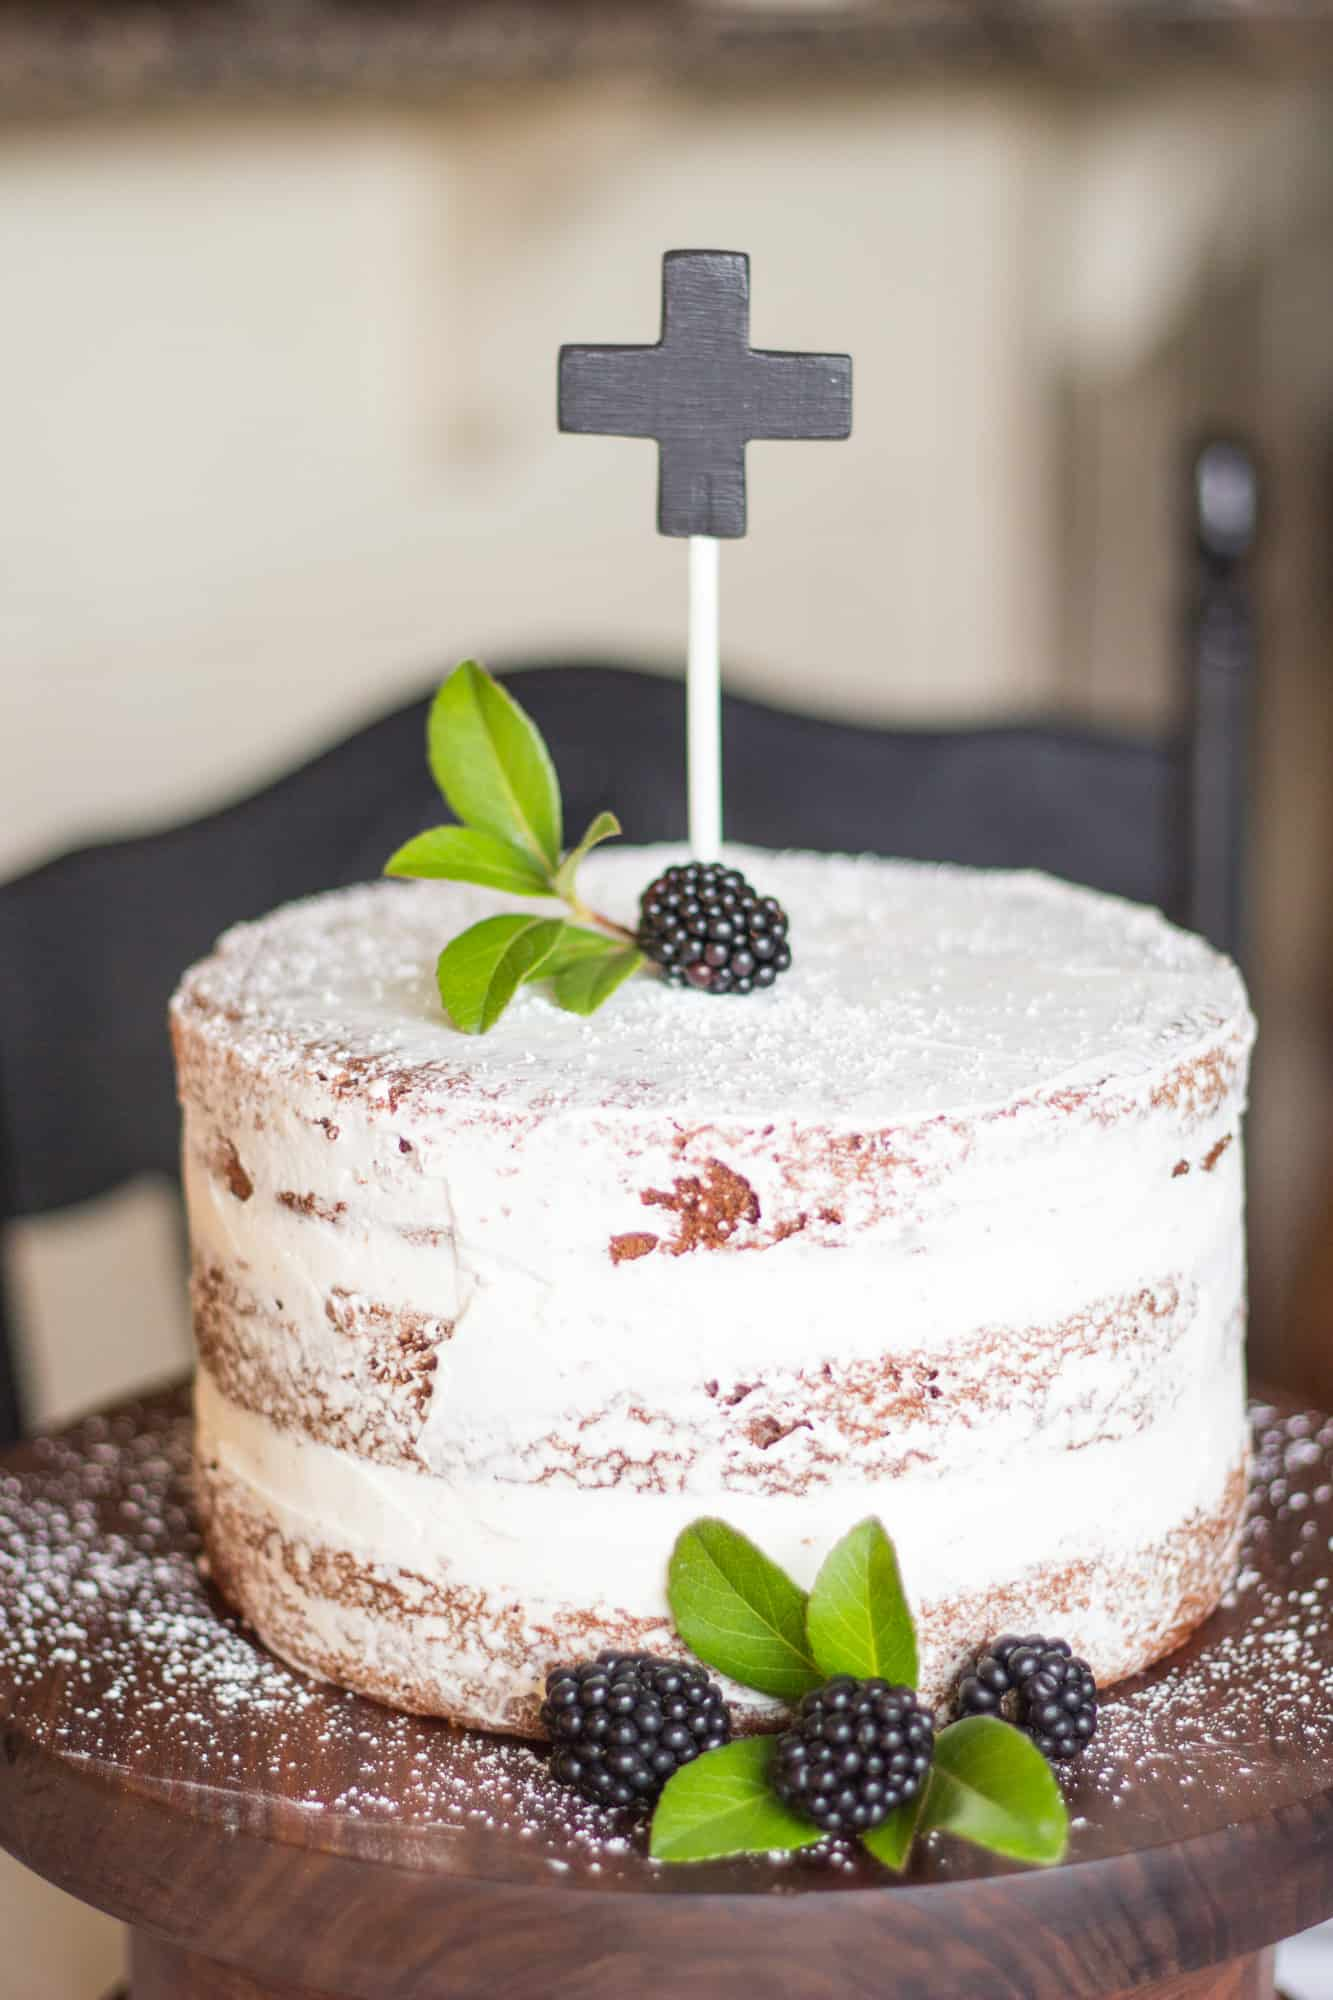 The Naked Cake: My Red Velvet & Vanilla Cake with Whipped Cream Cheese Frosting   Kimbrough Daniels